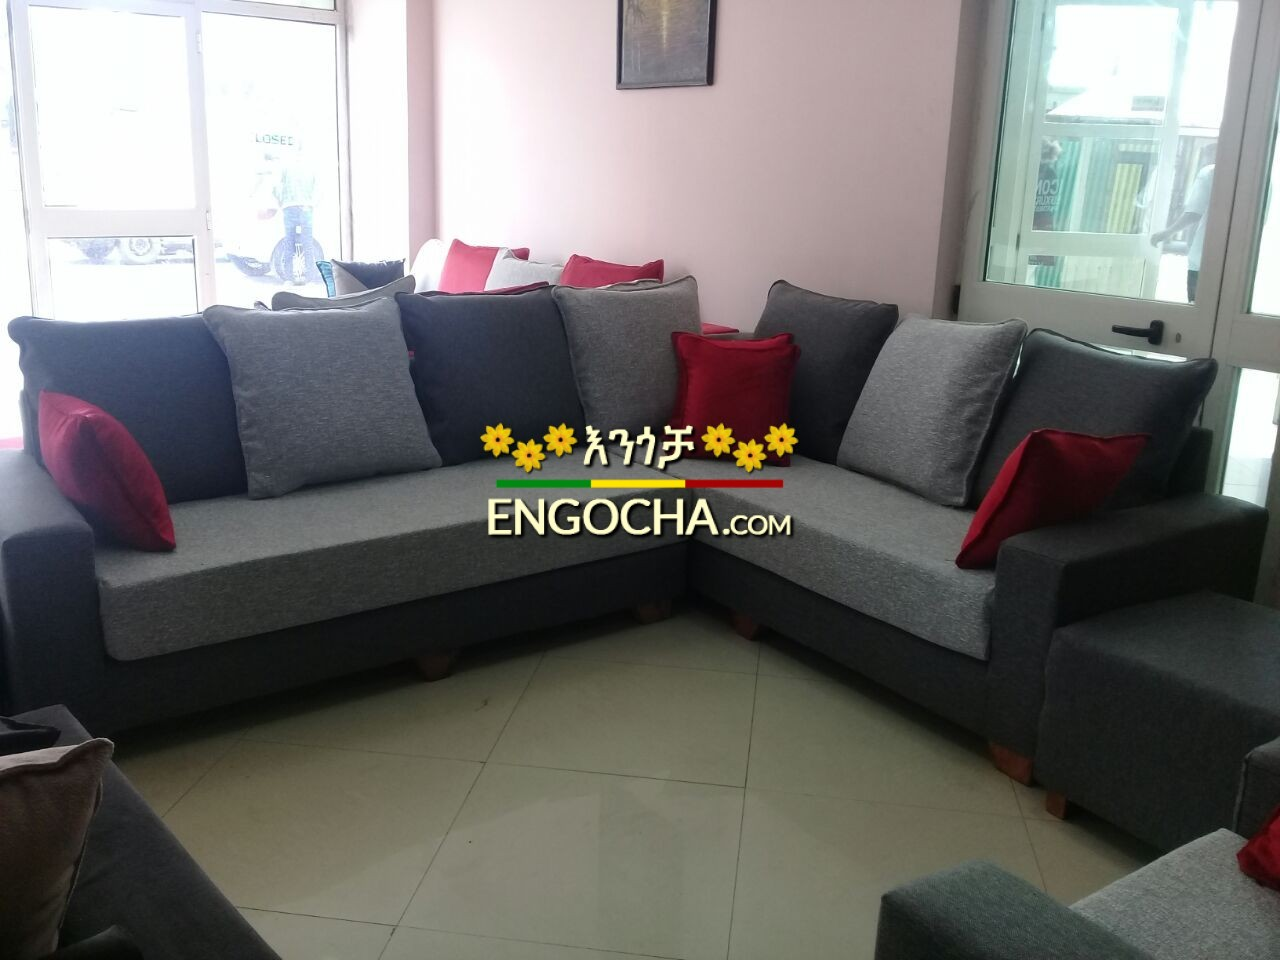 L Shape Sofa Set Designs+price Most Expensive New Sofa For Sale Price In Addis Ababa Ethiopia